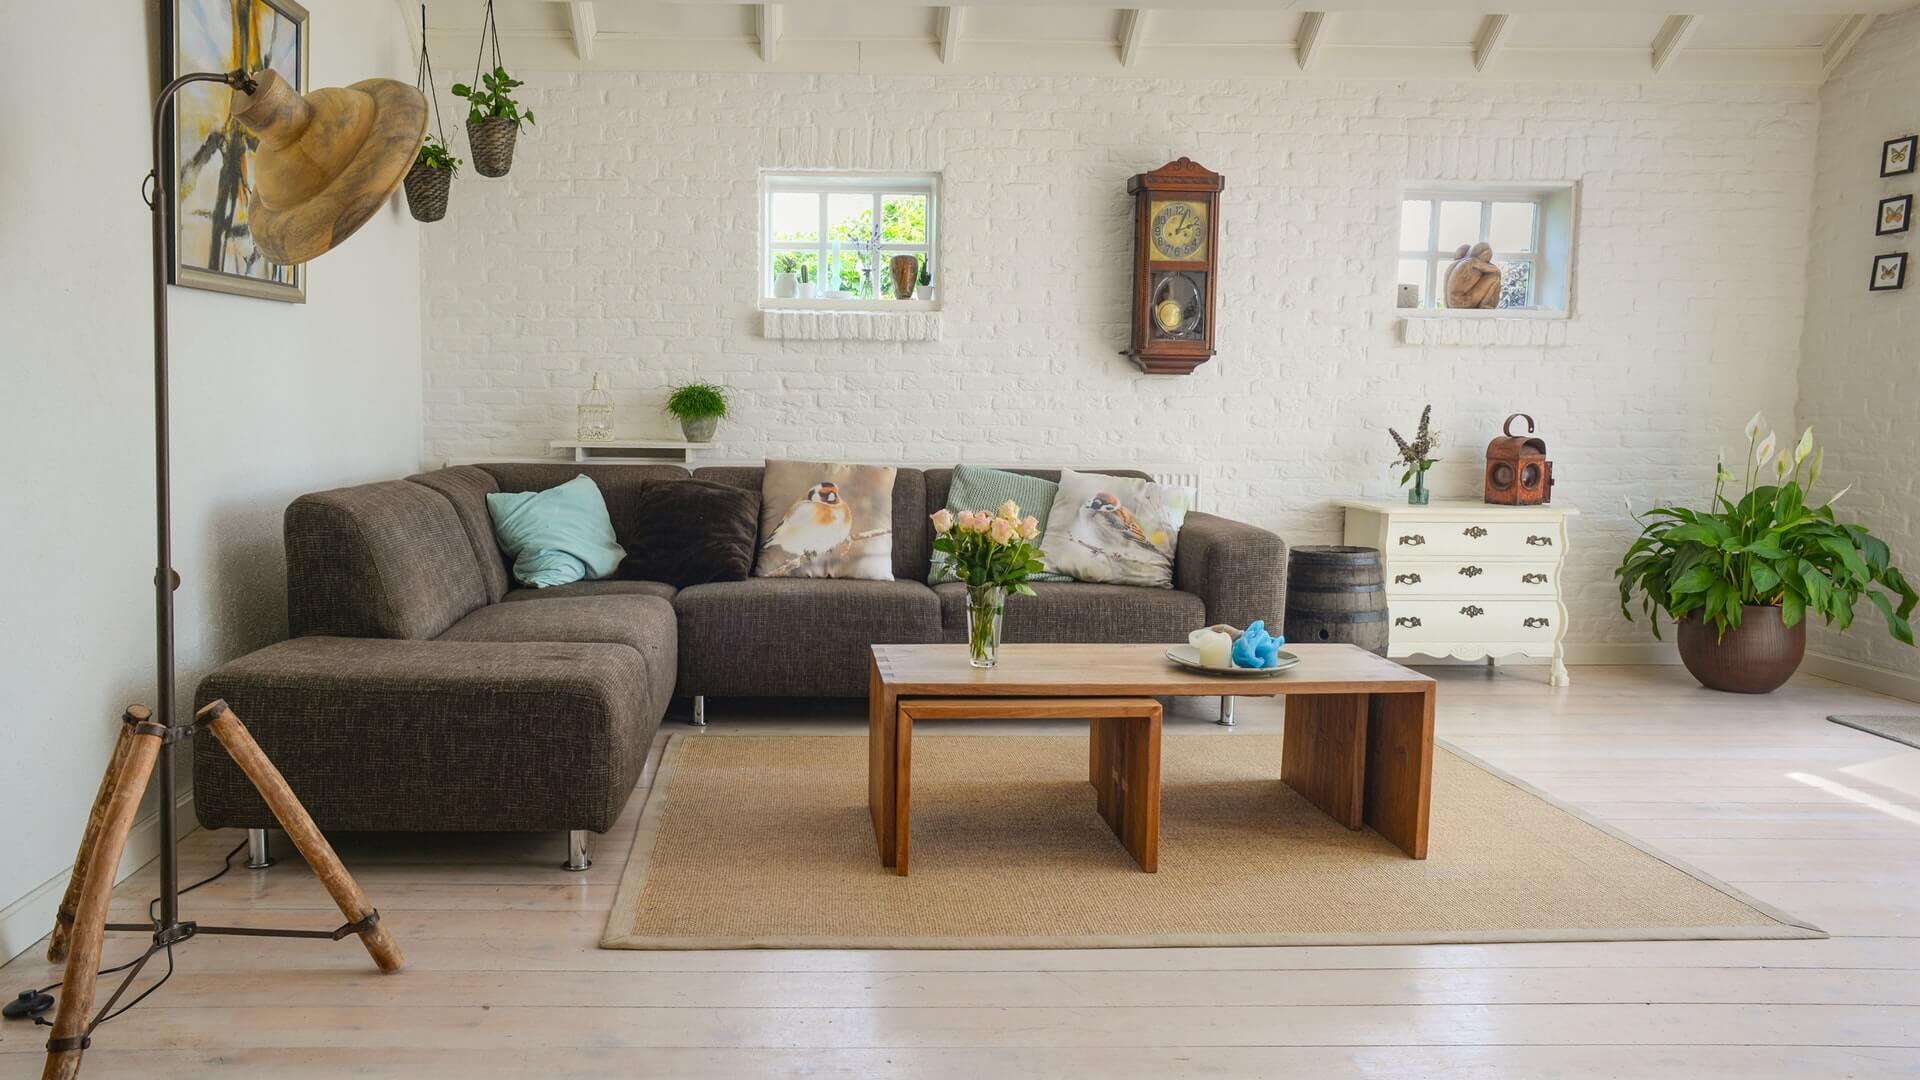 Easy Steps on How To Start Decorating Your Dream Home